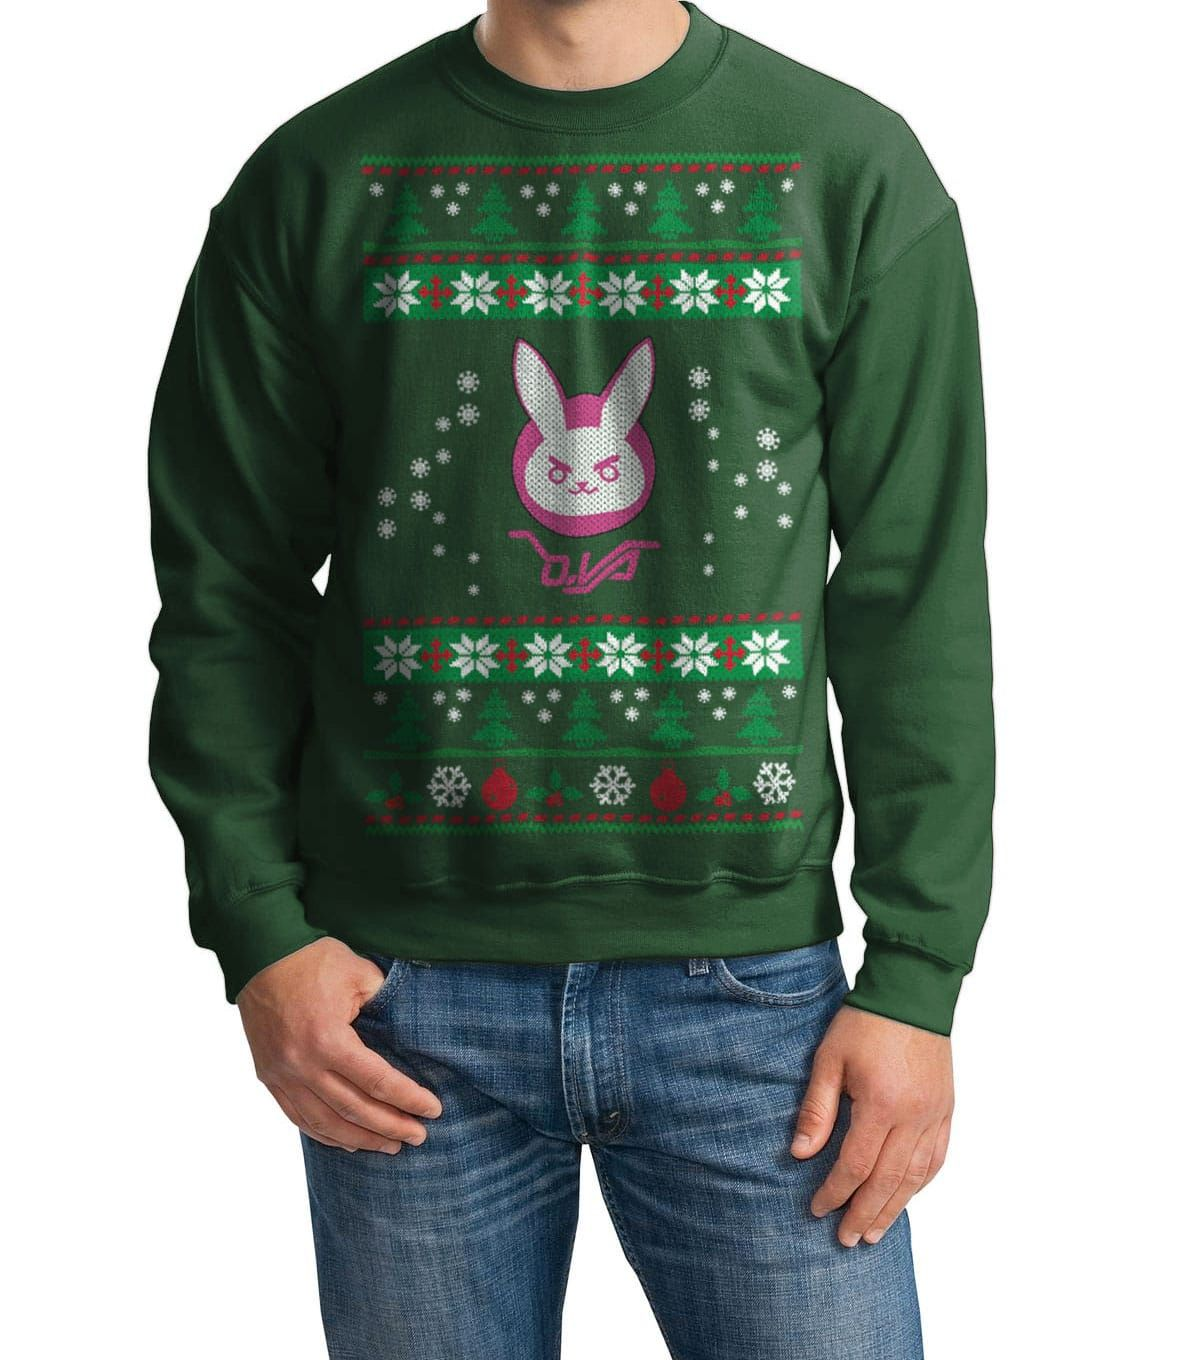 Overwatch Dva Bunny Spray Ugly Sweater For Christmas The